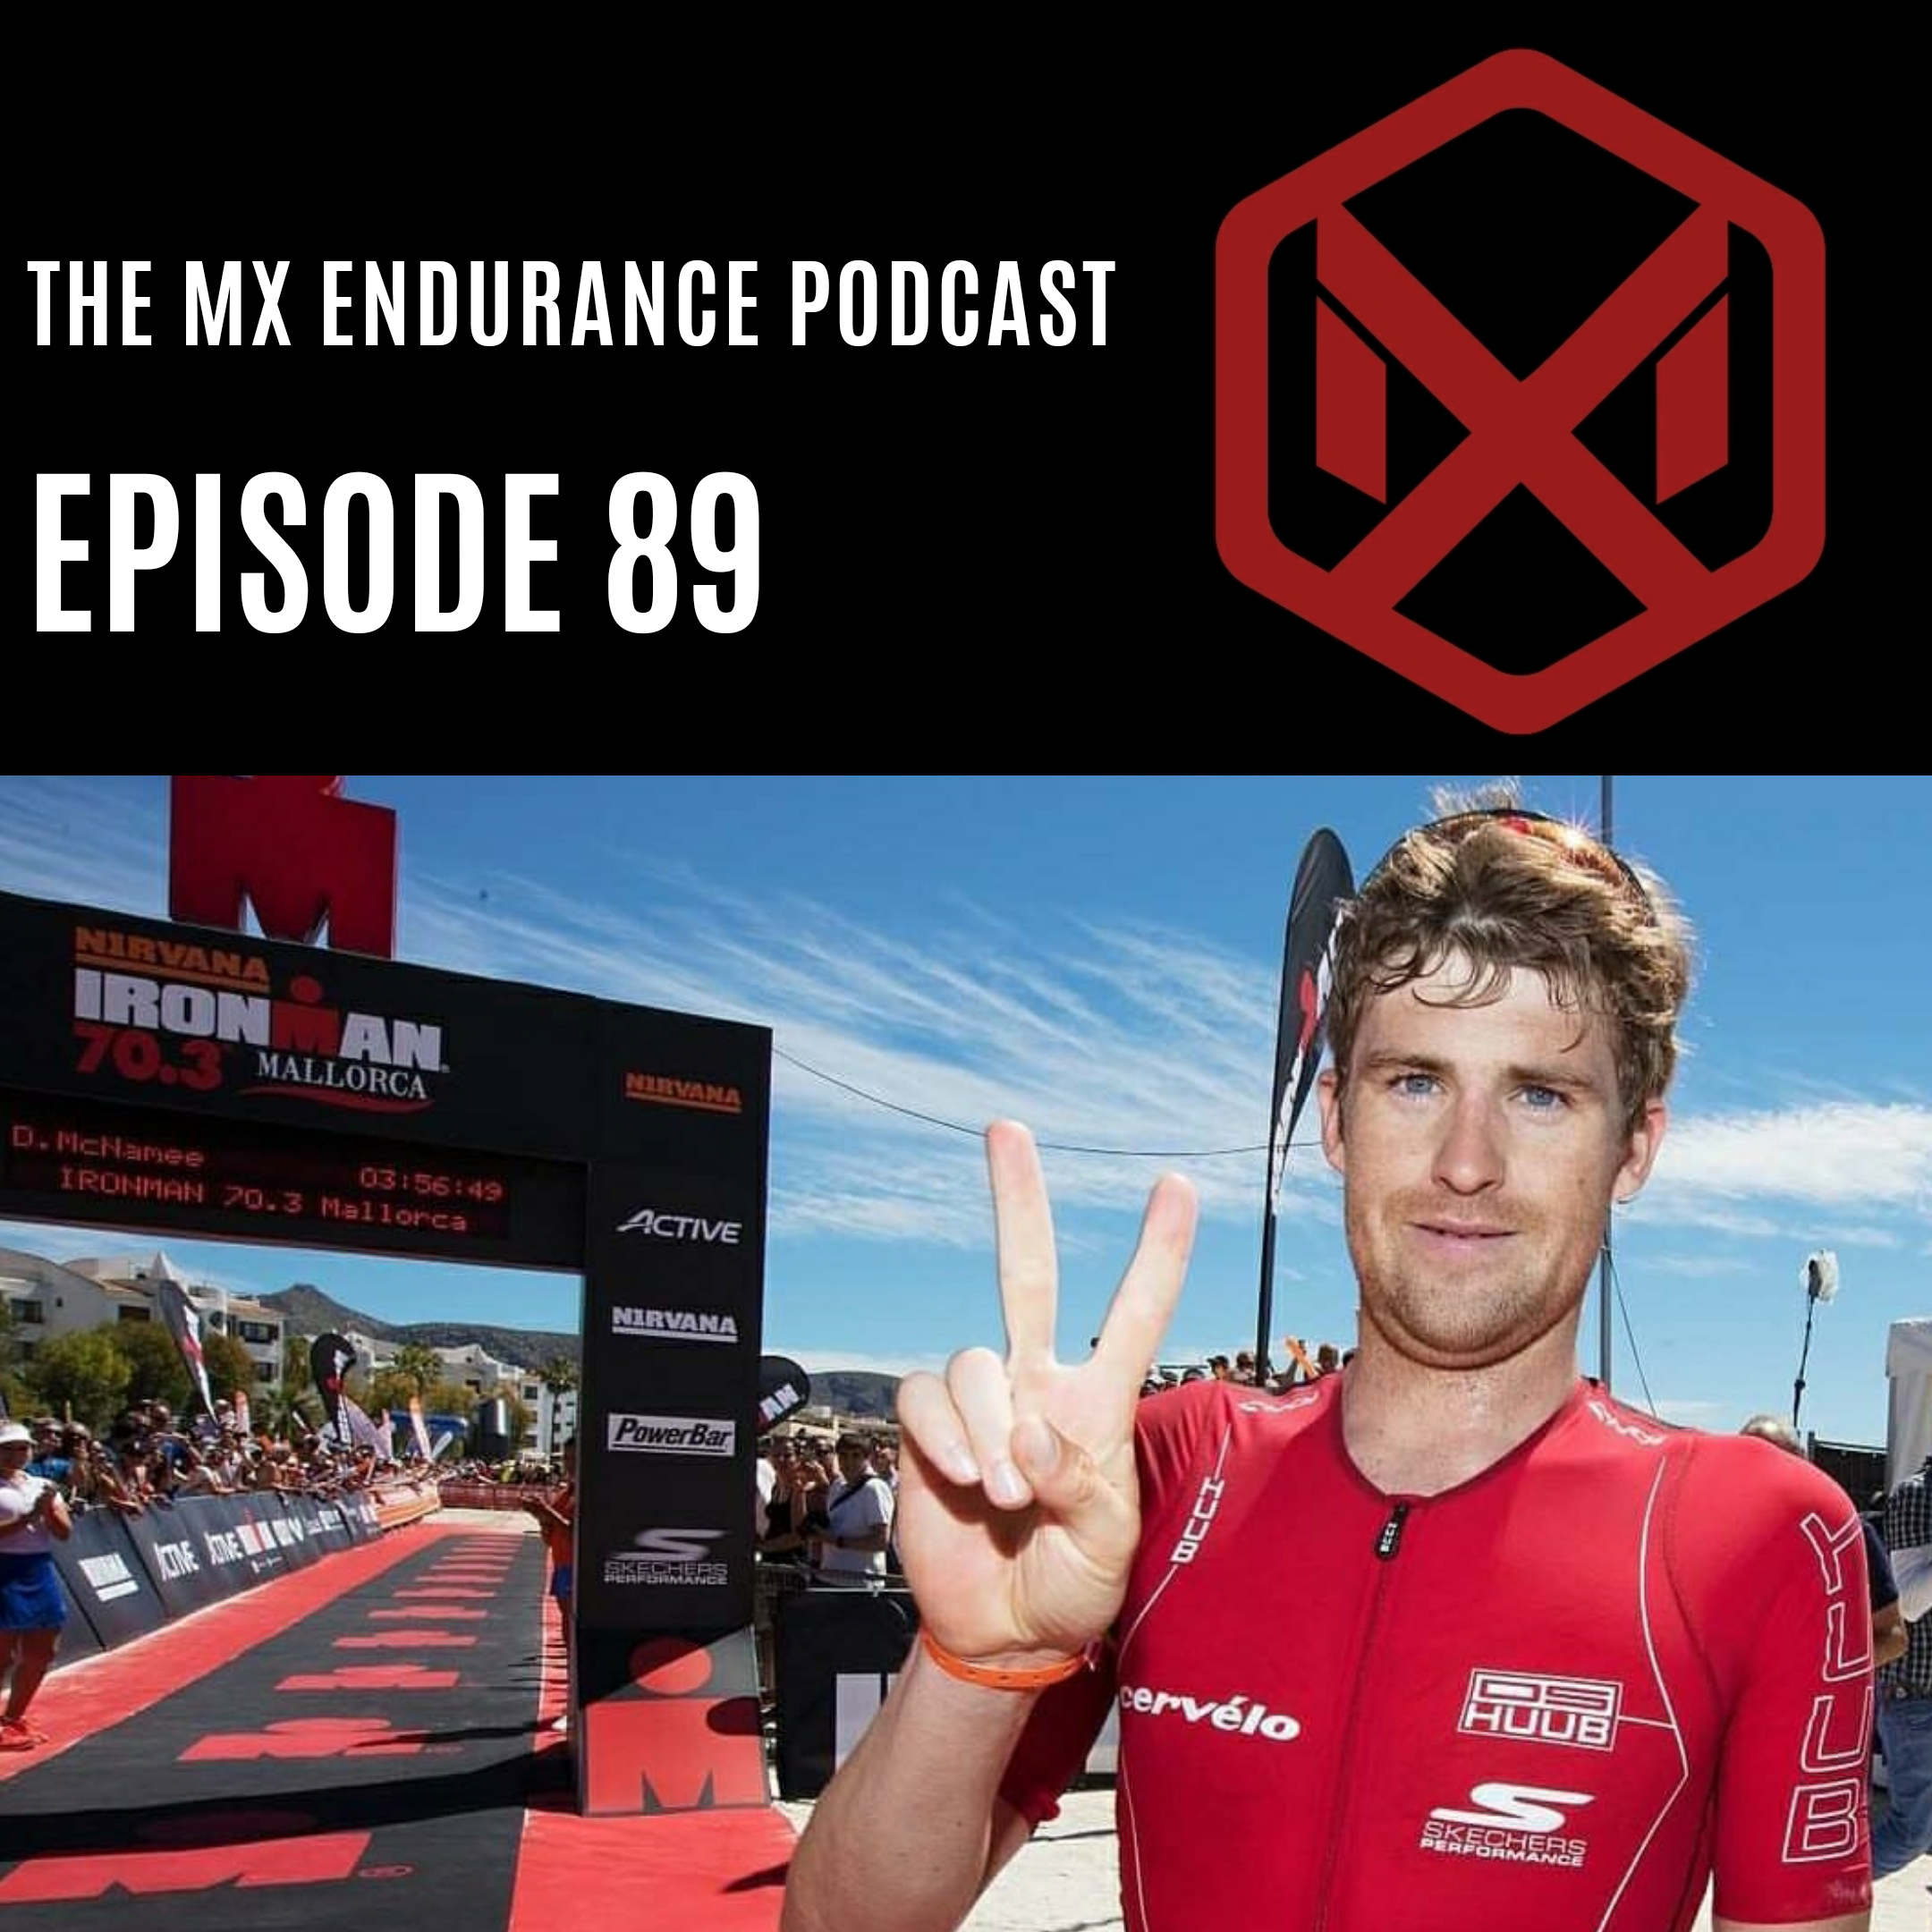 #89 - Kona Sold, IronMan Virtual Racing and Interview with David McNamee